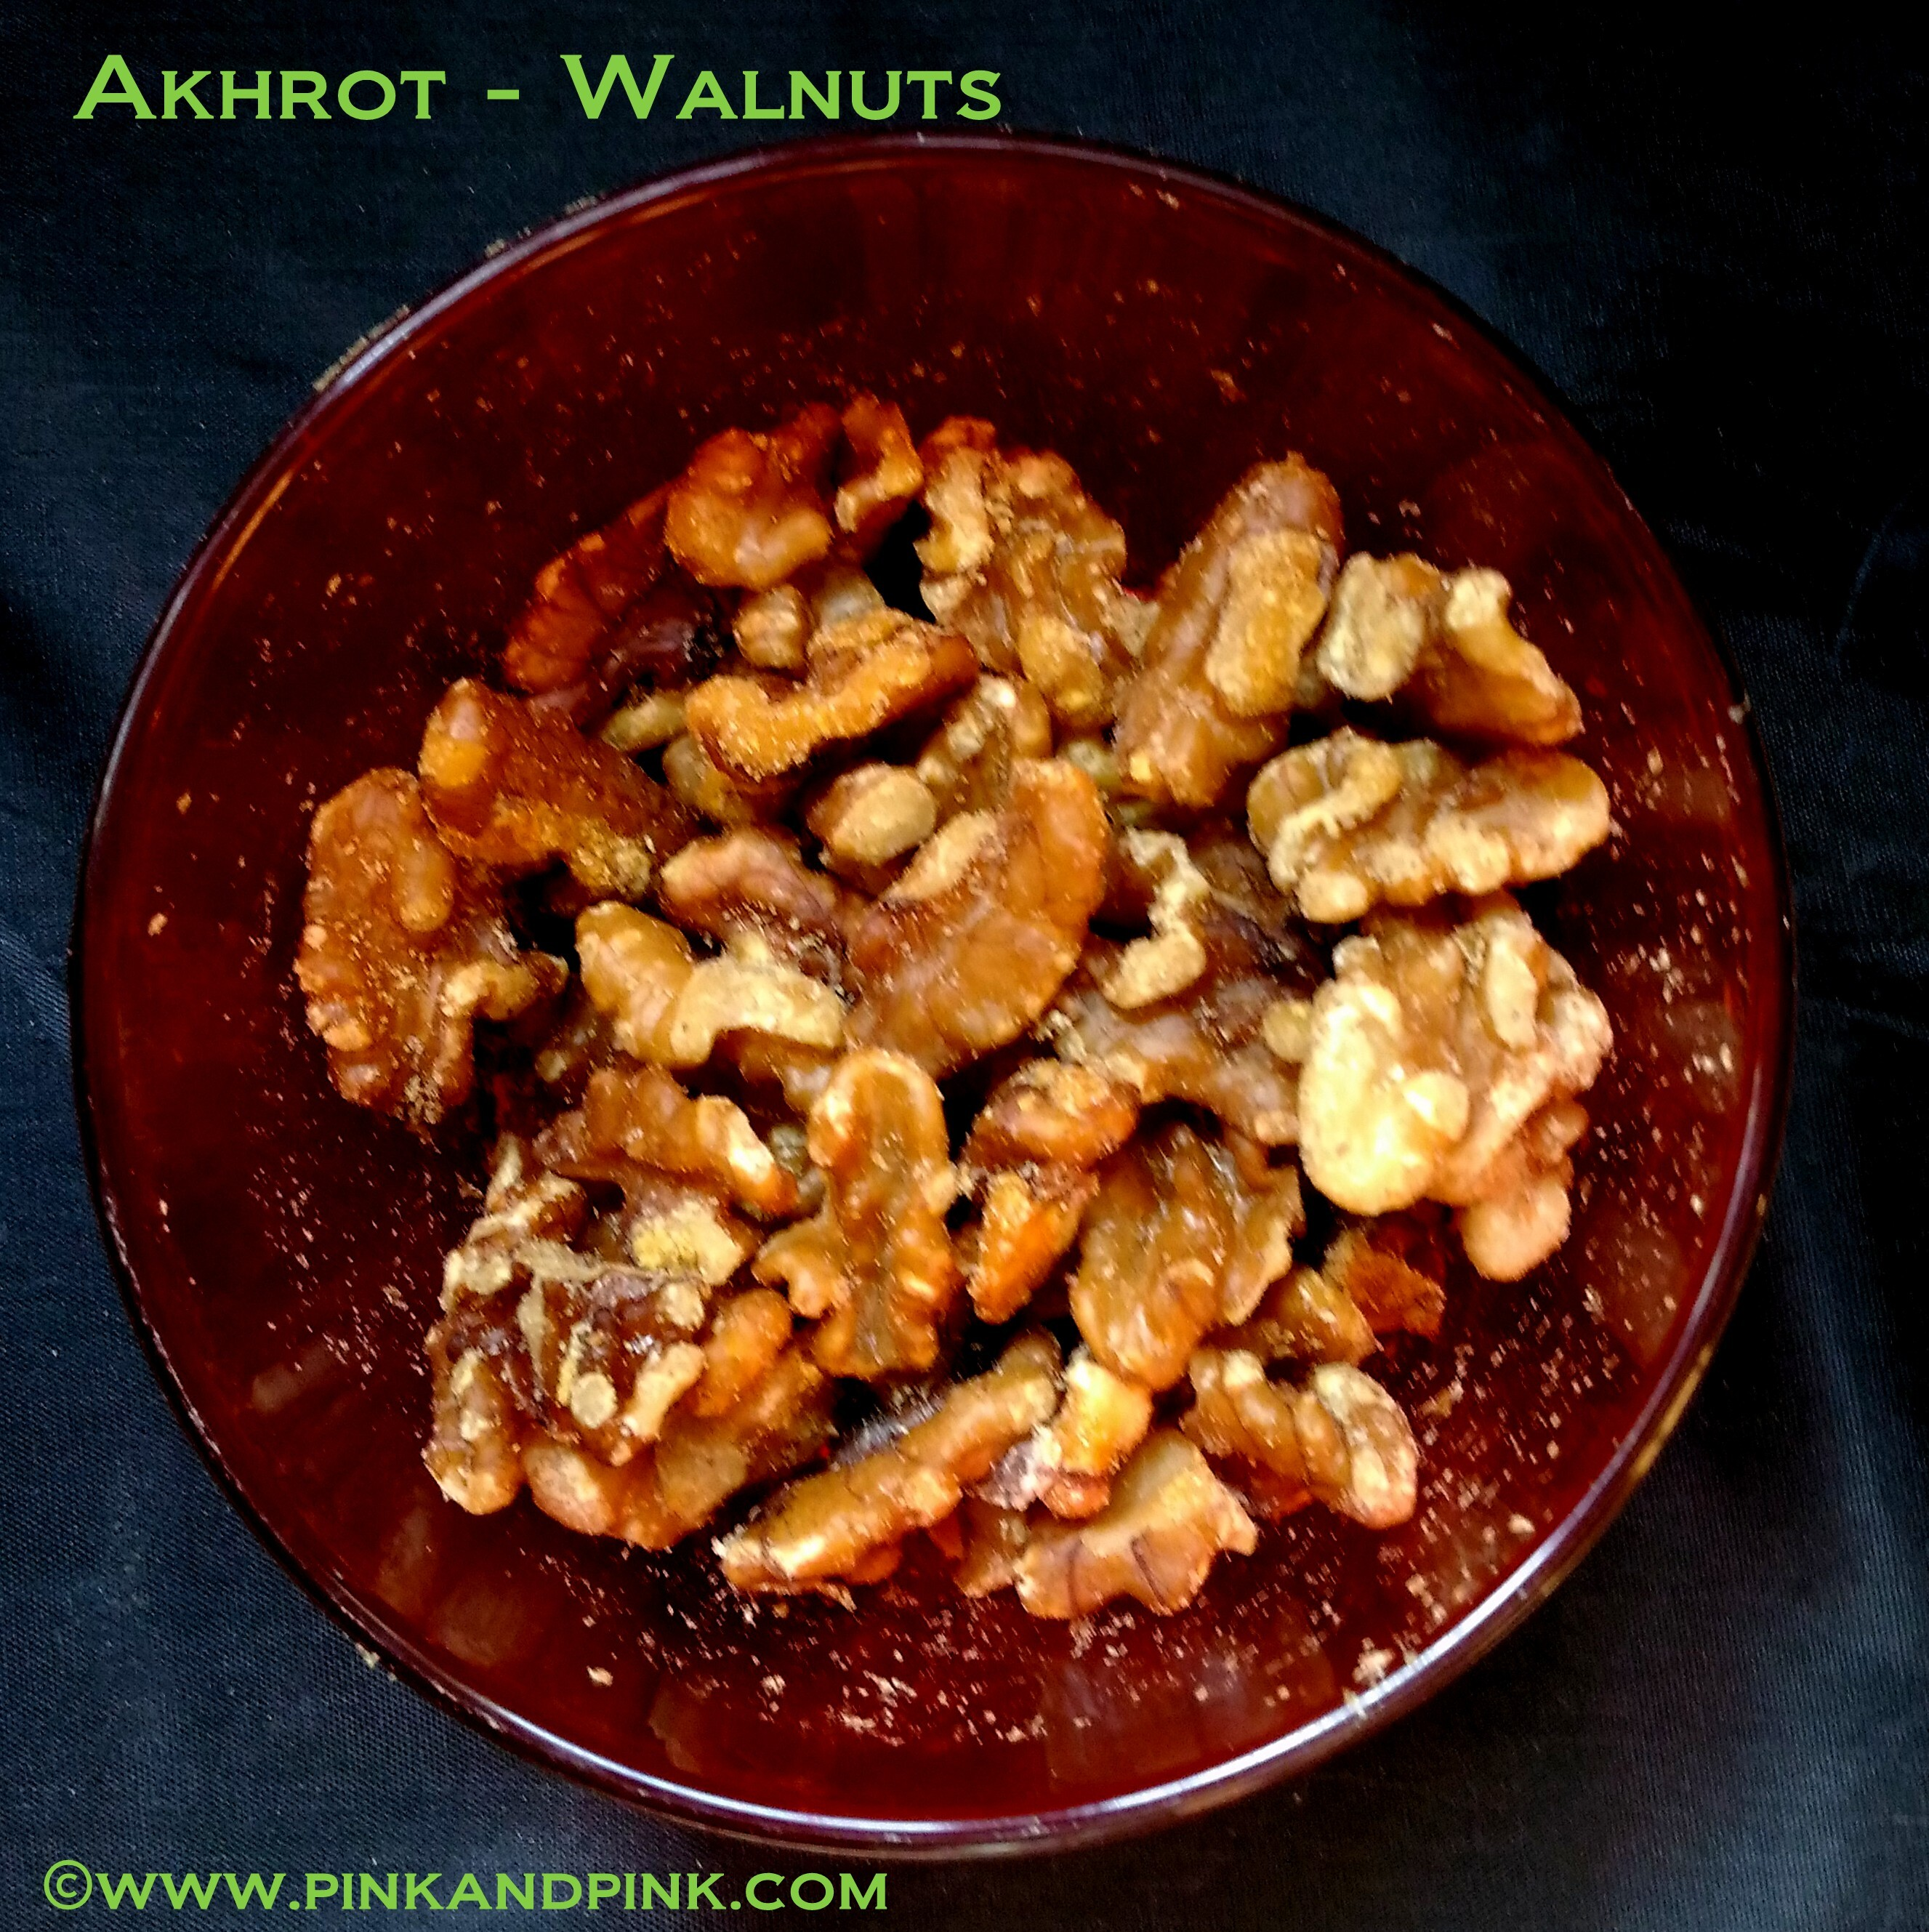 Akhrot Benefits | Top 10 Health Benefits of Akhrot Walnut